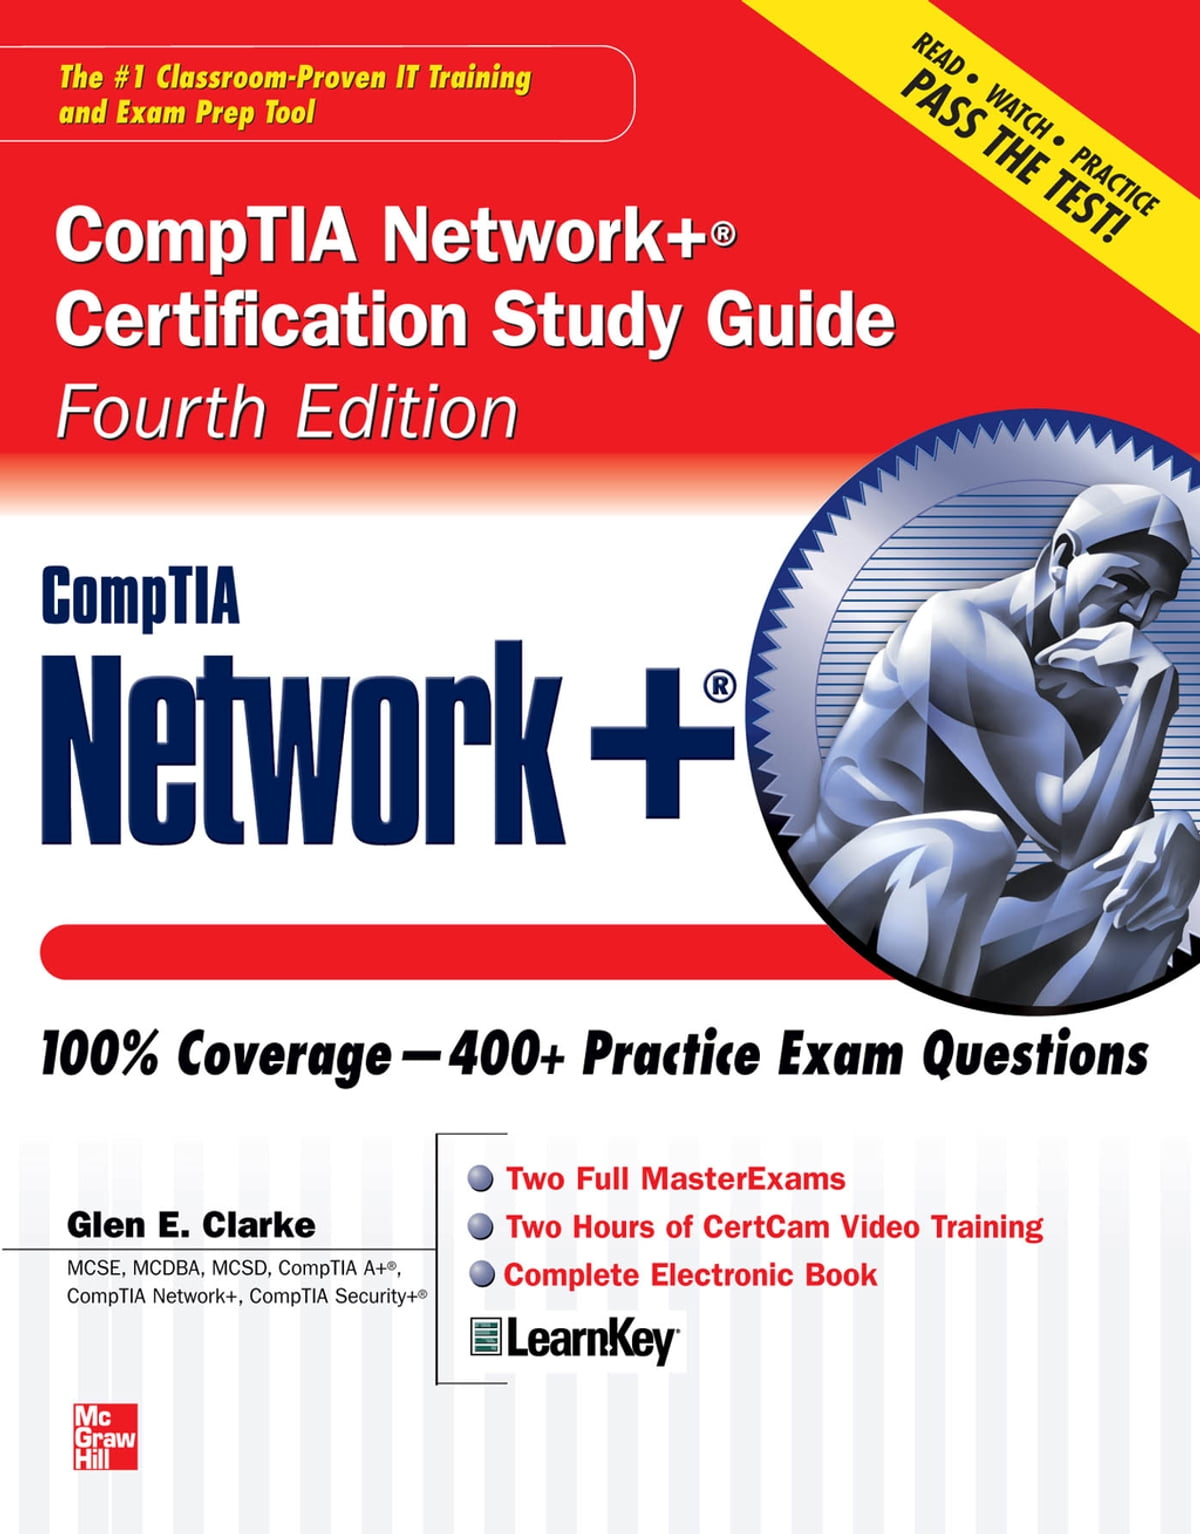 Comptia network certification study guide 4e enhanced ebook comptia network certification study guide 4e enhanced ebook ebook by glen e clarke 9780071771085 rakuten kobo 1betcityfo Gallery